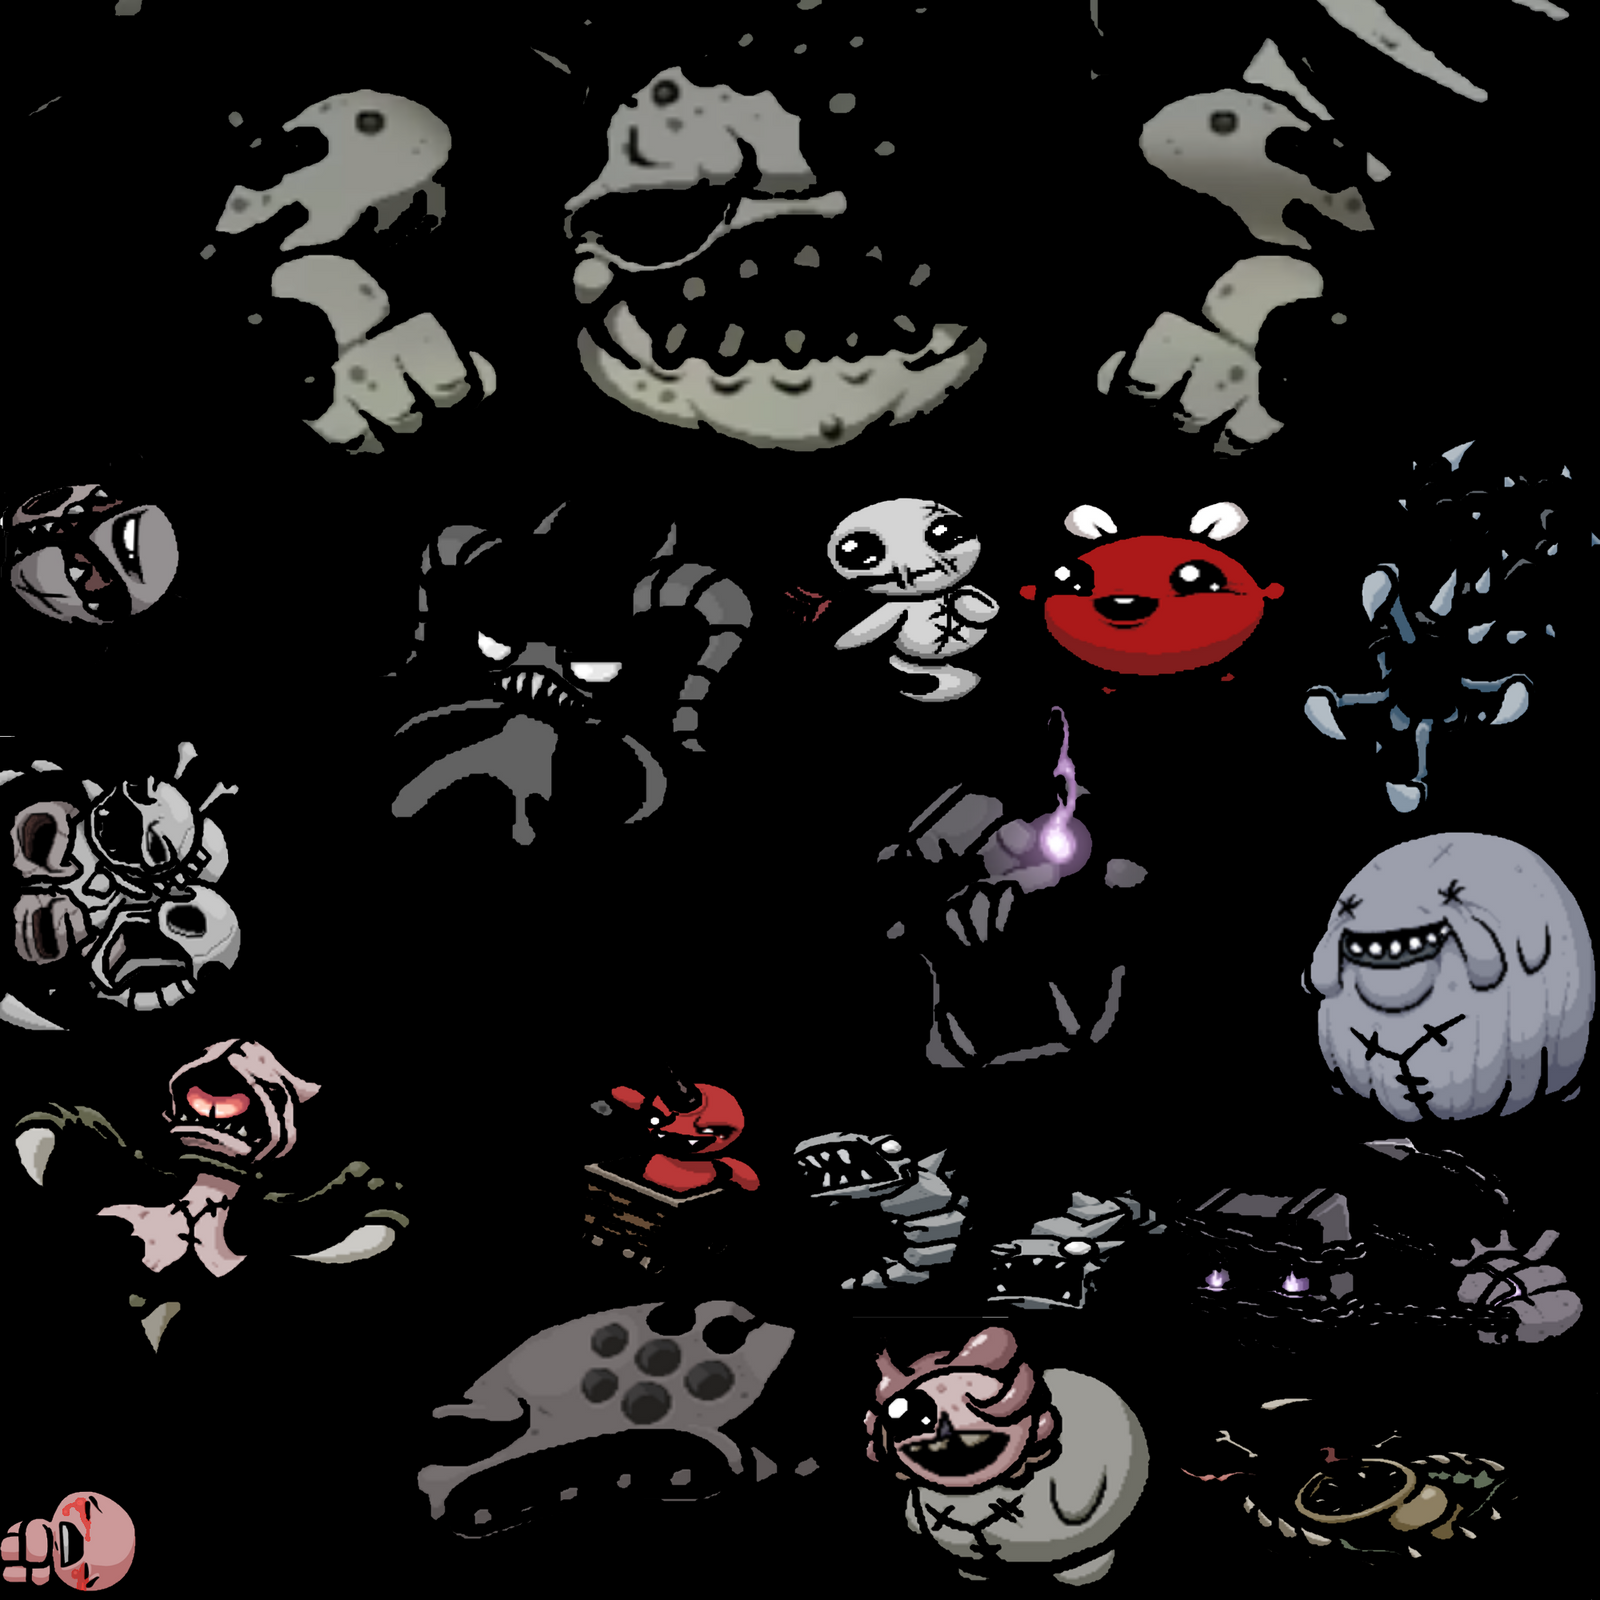 The Binding Of Isaac Antibirth Bosses By SpaceRaptors On